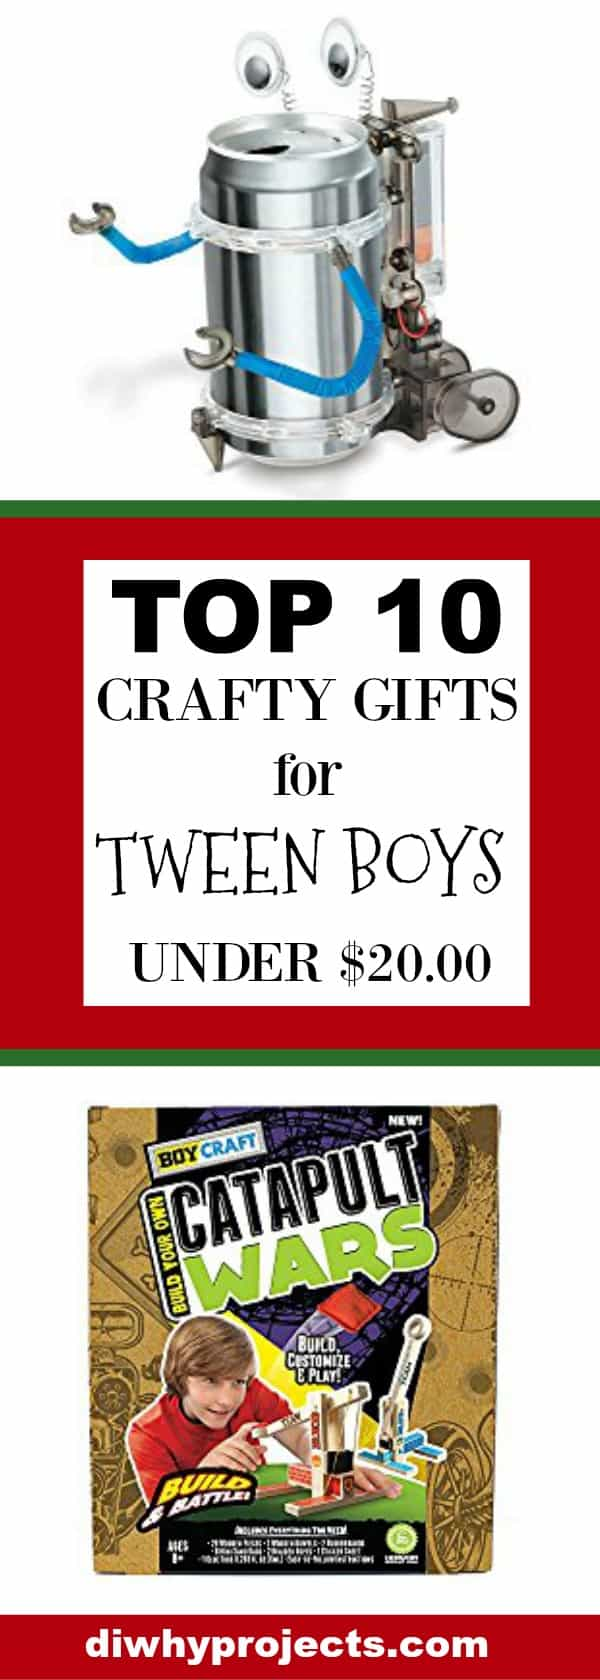 top 10 crafty gift ideas for tween boys 2017 christmas gift guide daily dose of diy